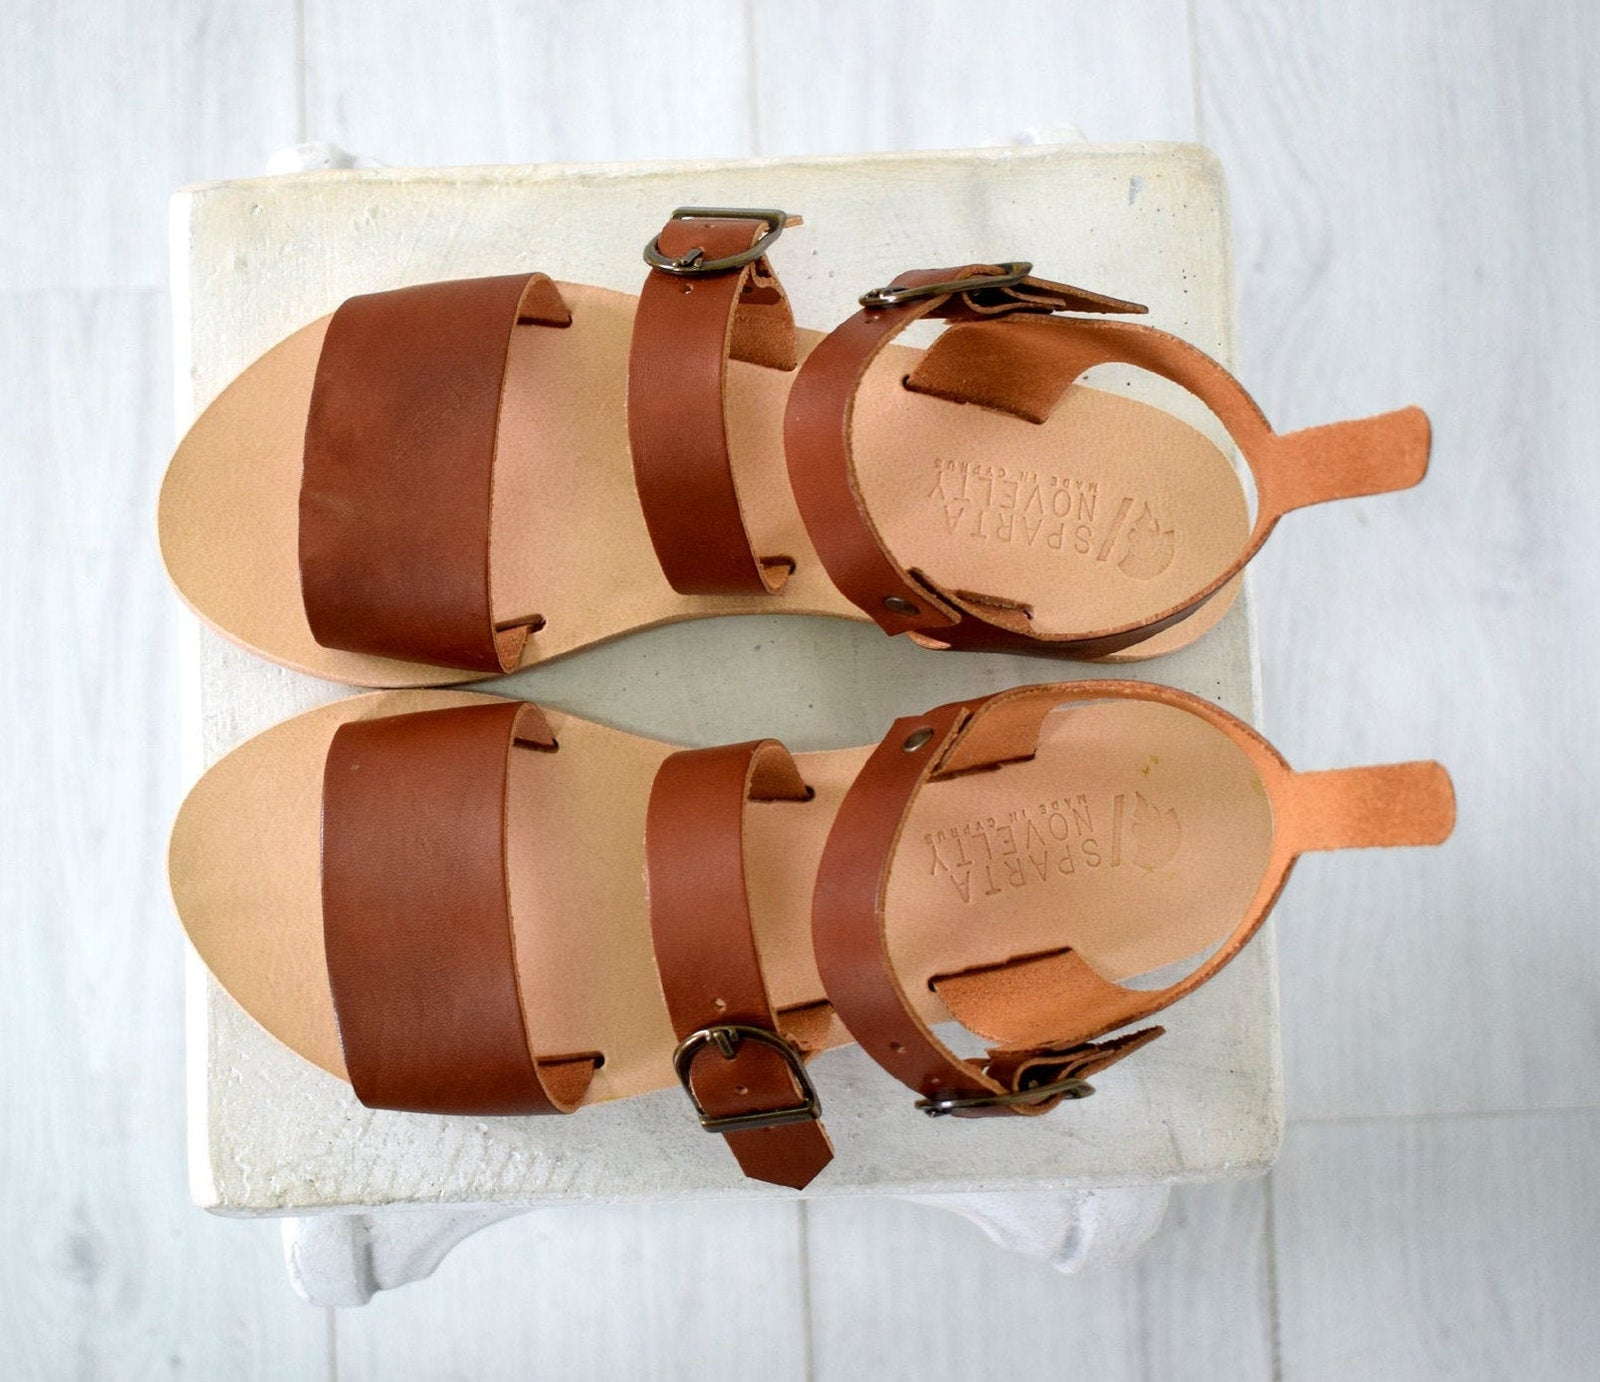 Leather Sandals Women, Handmade in brown color, Sparta sandals.